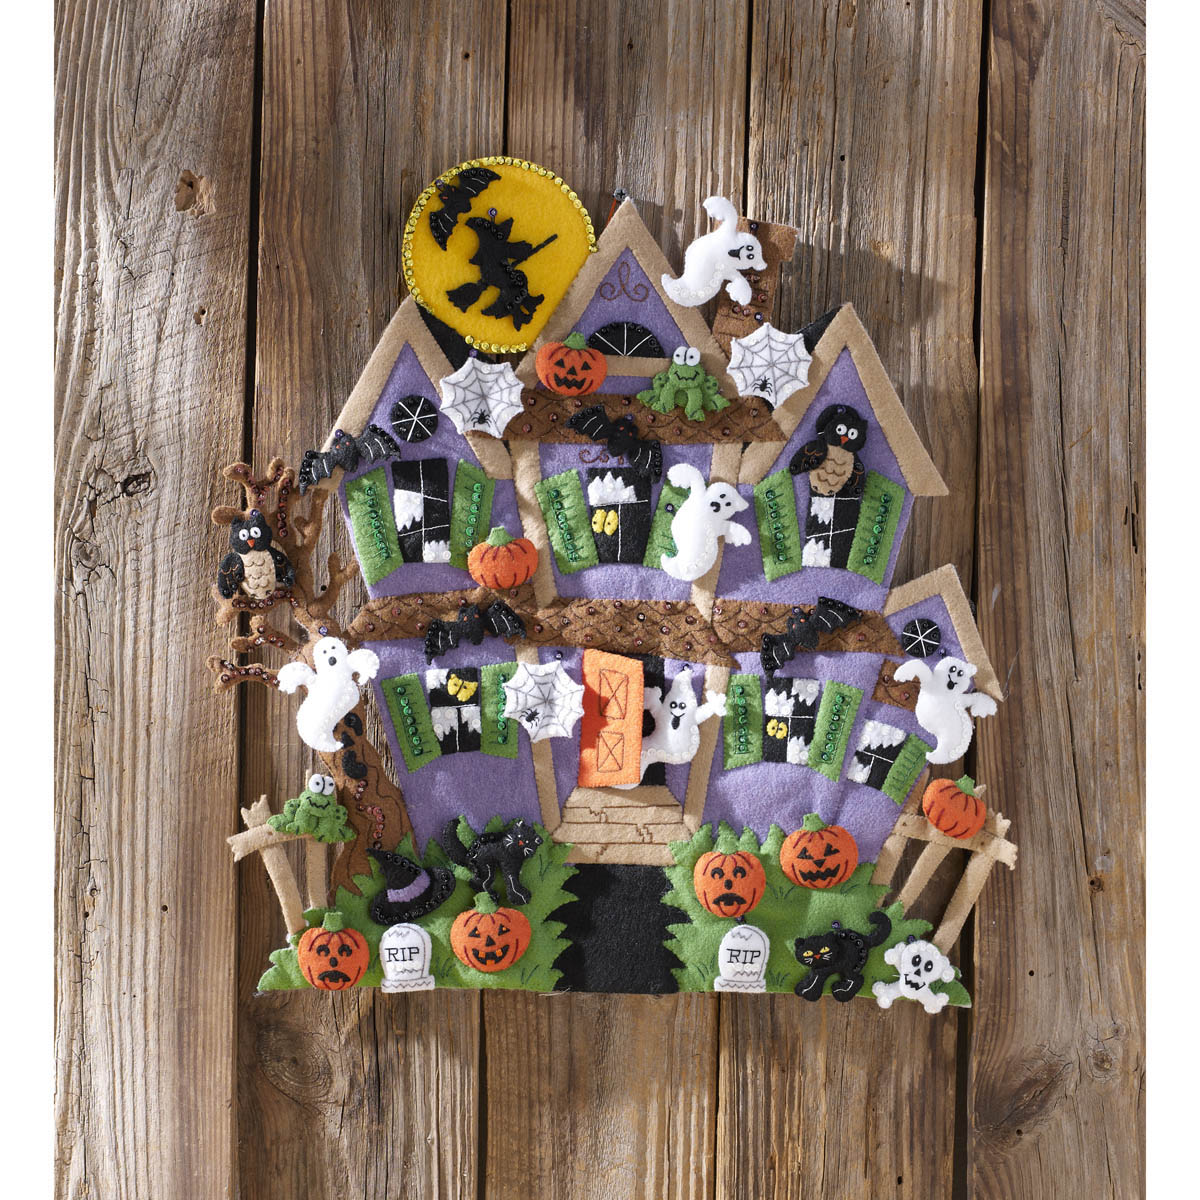 Bucilla ® Seasonal - Felt - Home Decor - Door/Wall Hanging Kits - Haunted House